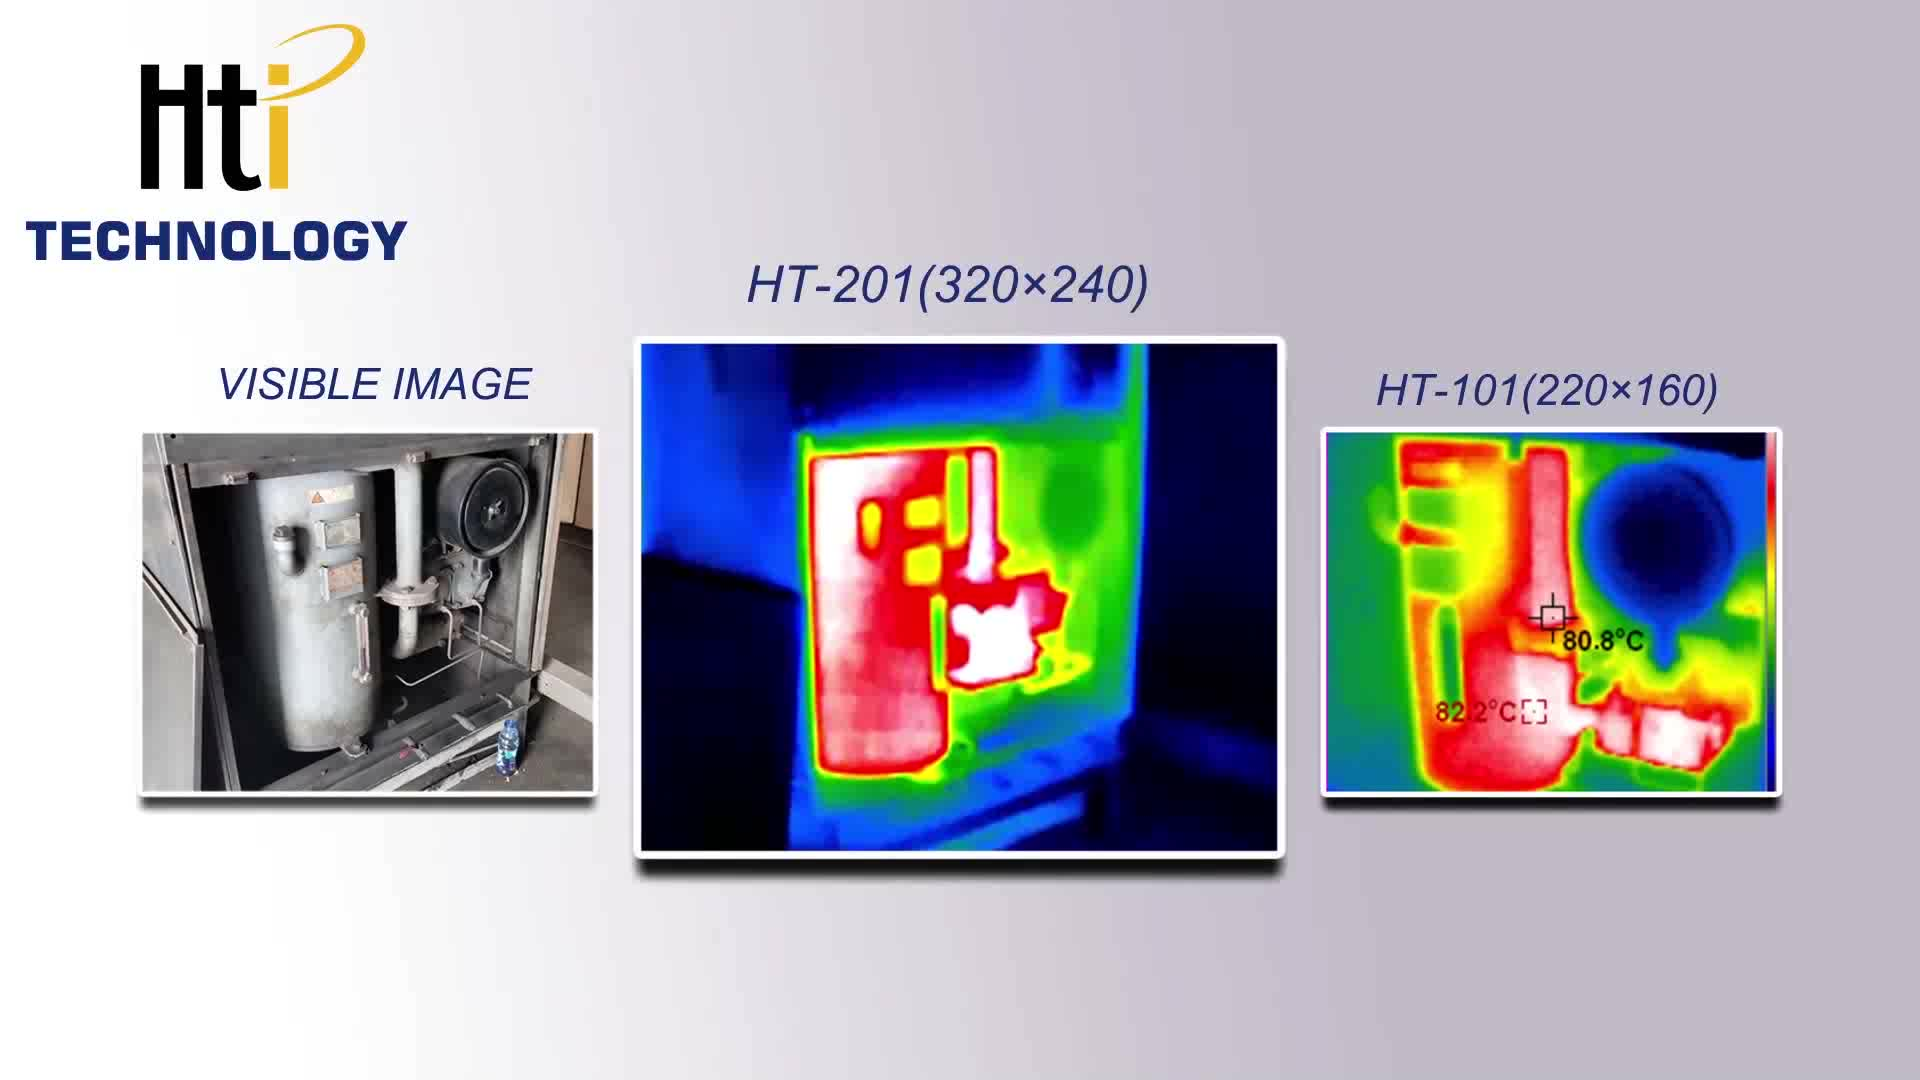 HTI 320 *240 Cellphone Thermal Imaging Camera Optics Heat IR , HT-201 infrared imager for mobile phone